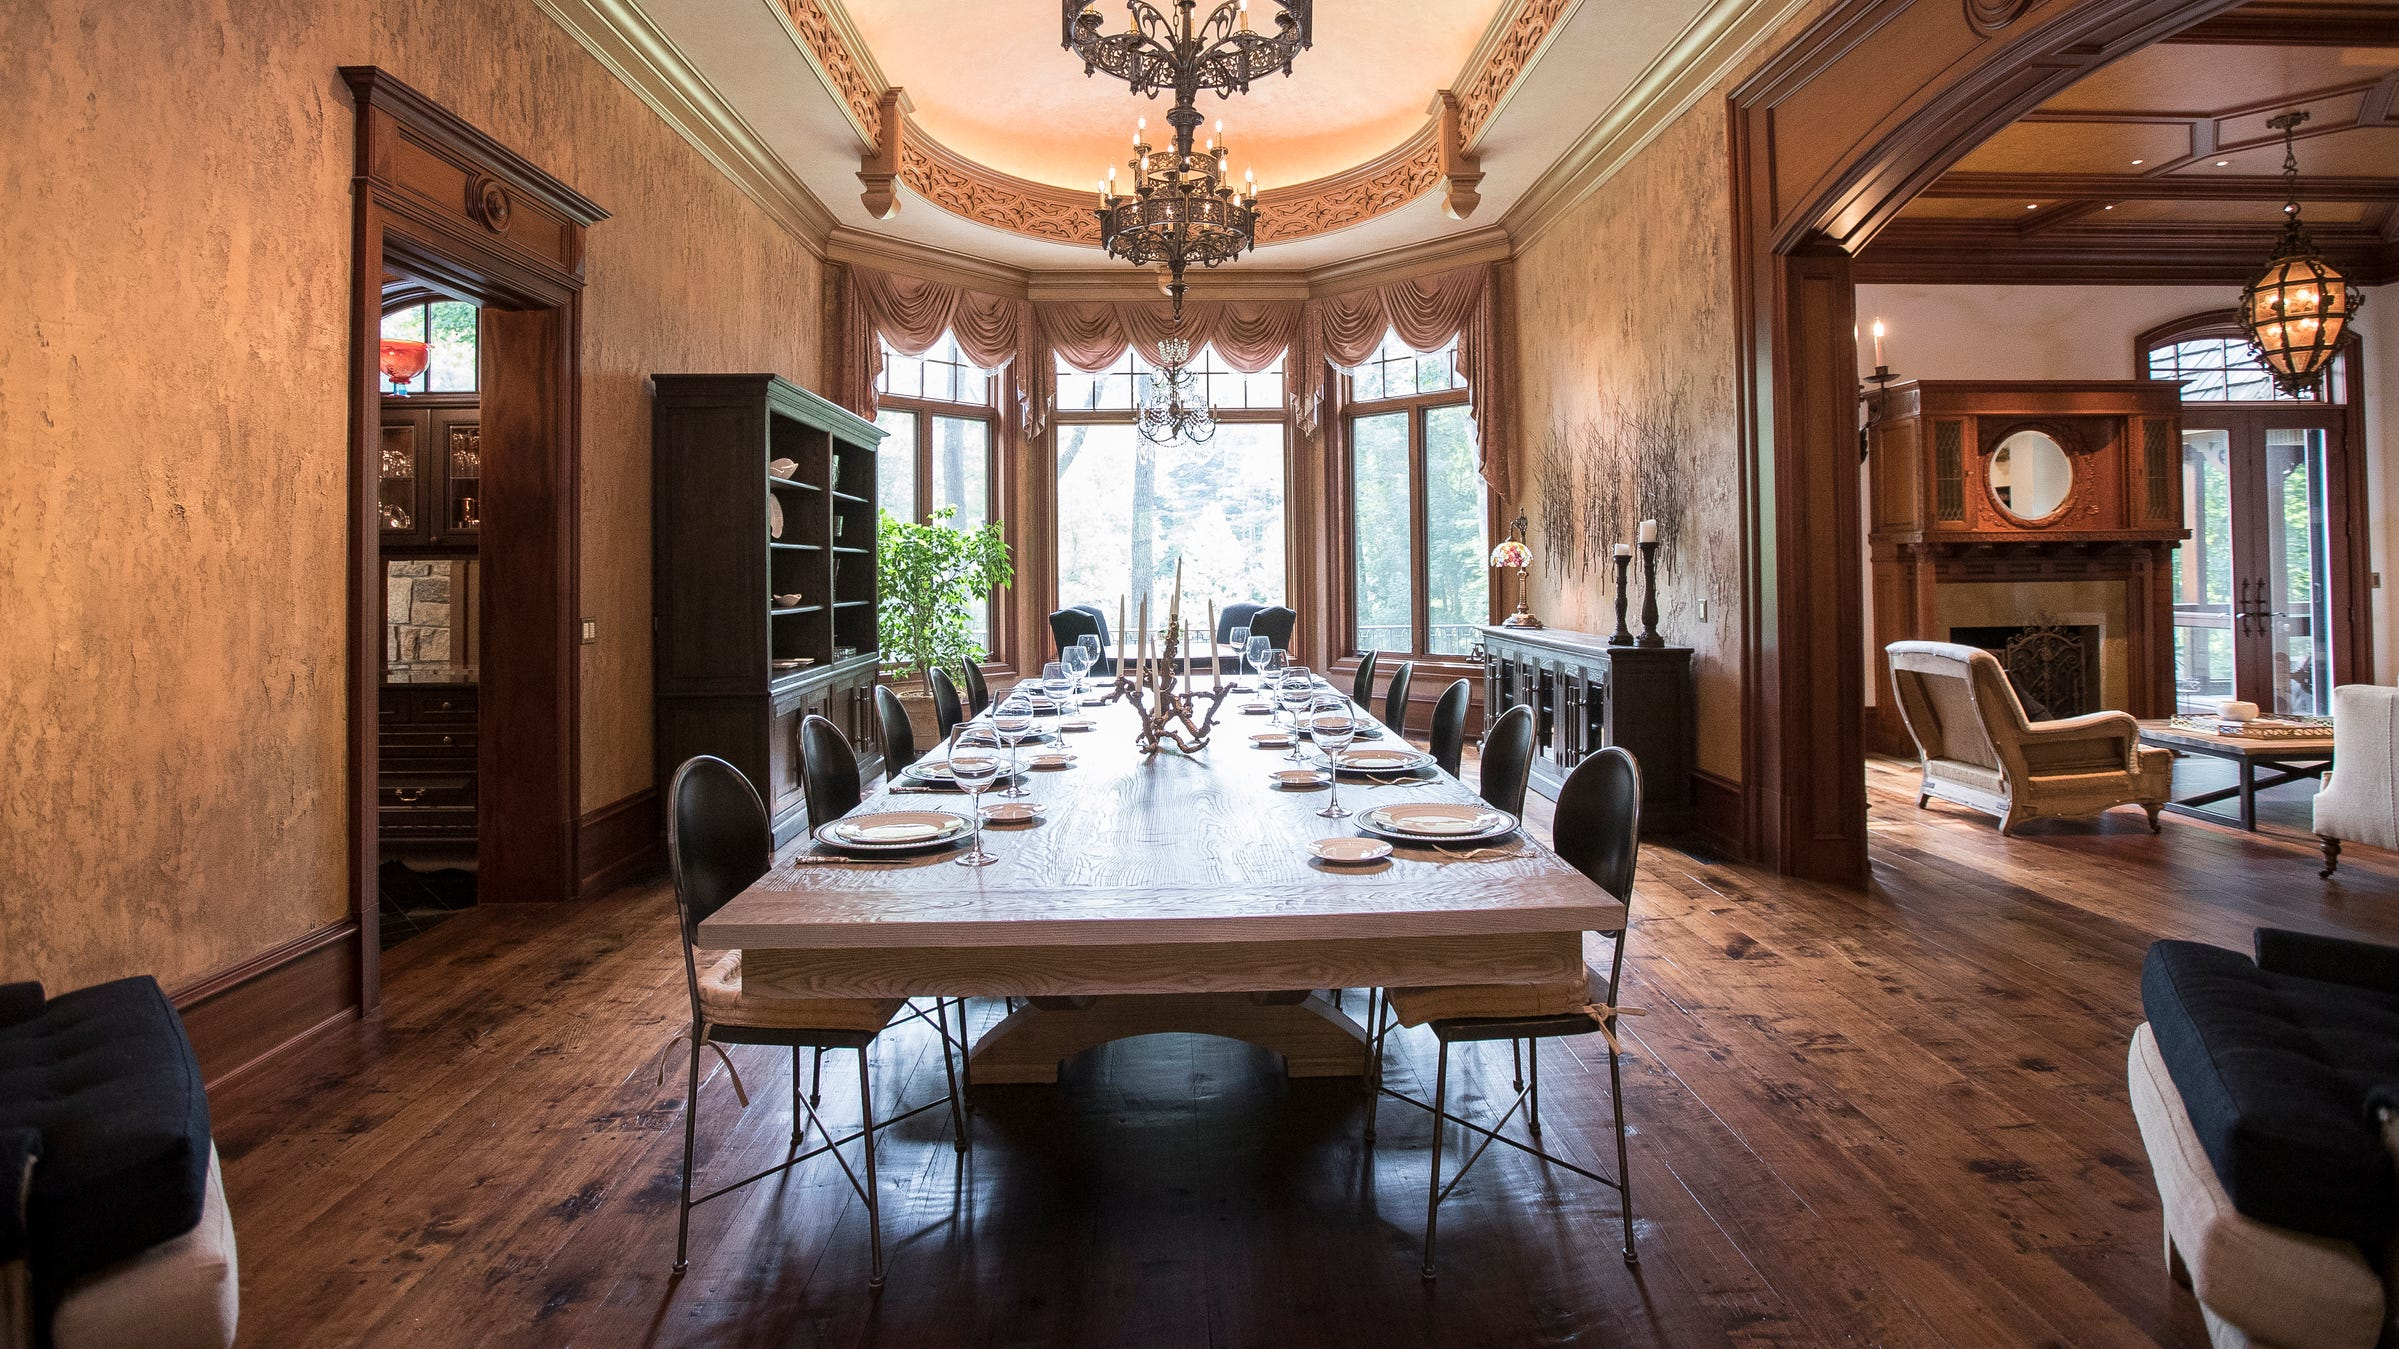 The opulent formal dining room has deep plaster carving around the ceiling and Venetian plaster finish on the walls.  The wide-plank wood floors were hand distressed by an artisan, rather than bought pre-distressed. The living room is at right.